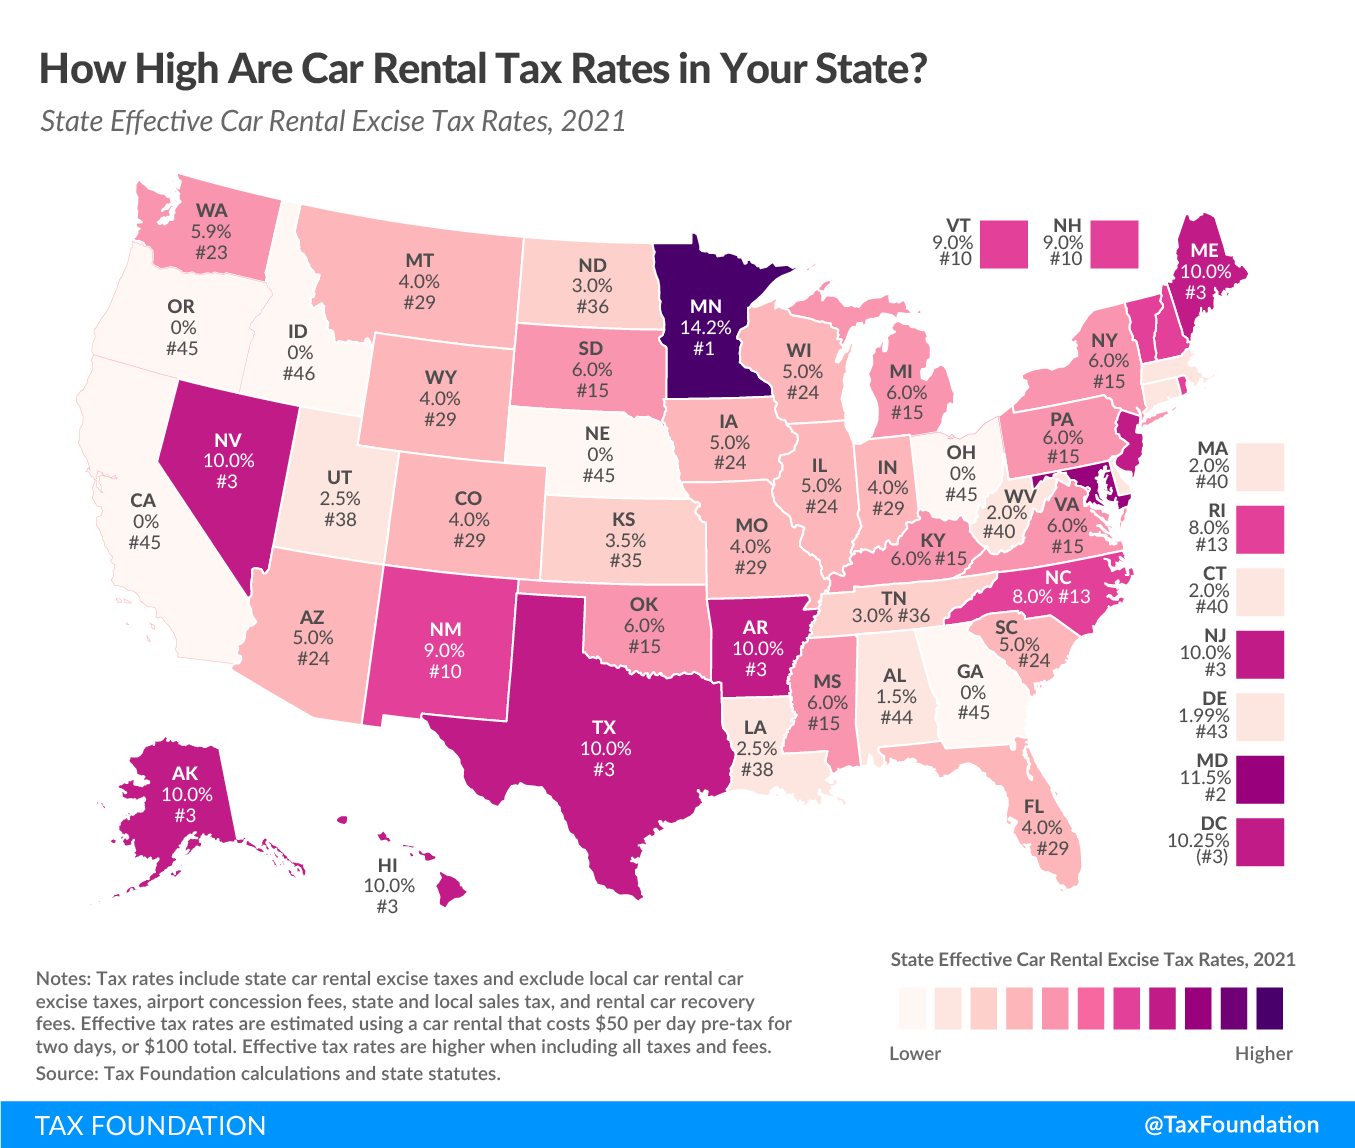 State and Local Car Rental Excise Tax Rates. Modernizing Rental Car Excise Taxes and Peer-to-Peer Car Sharing Taxes for a Post-Pandemic Future